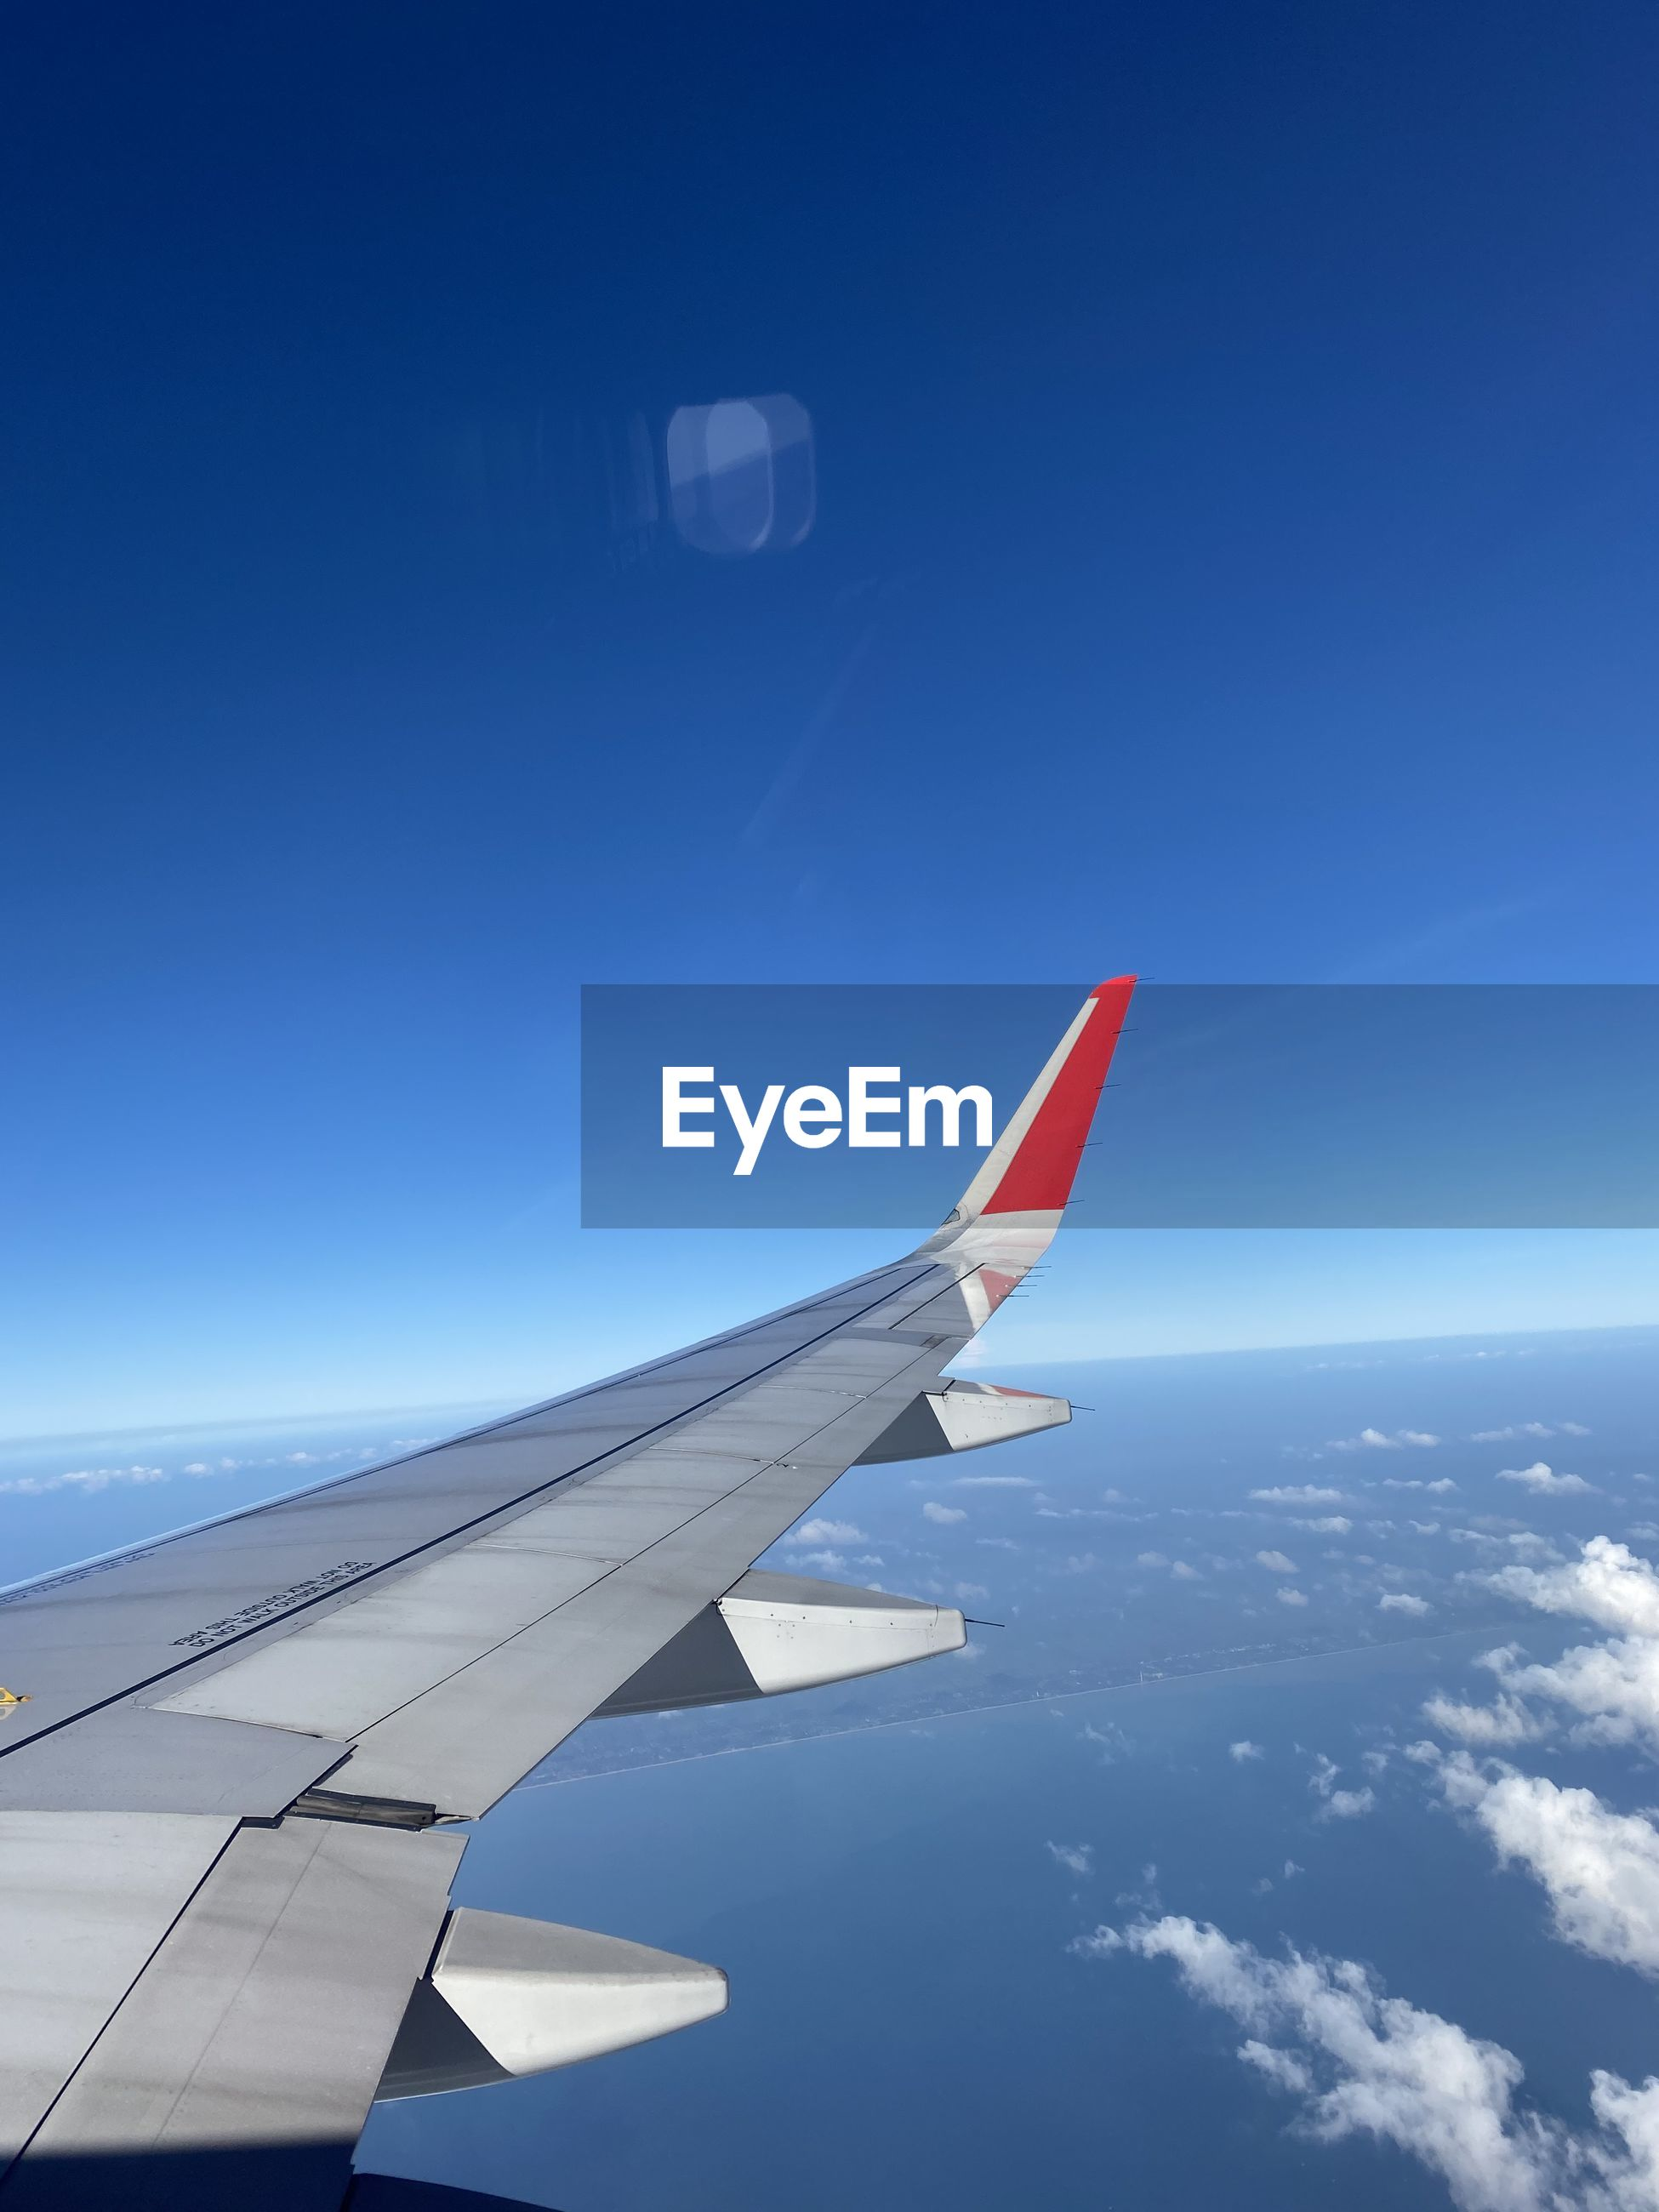 VIEW OF AIRPLANE FLYING OVER BLUE SKY